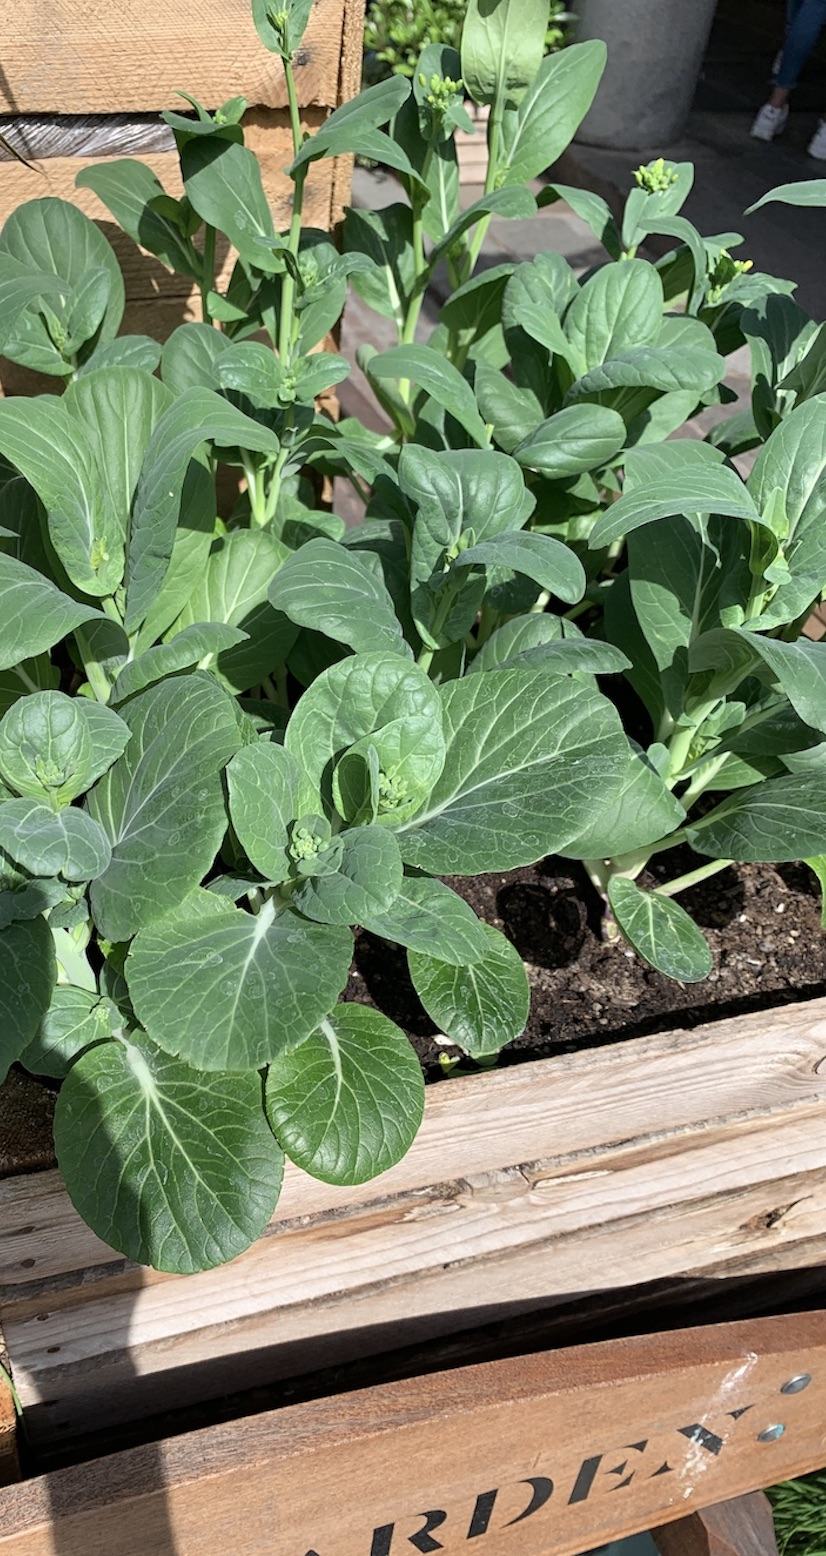 Crate Gardening for Small Spaces Broccoli Plant In Crate #Garden #Gardening #SmallSpace #SmallSpaceGardening #ContainerGardening #VegetableGarden #HerbGarden #PorchGarden #PatioGarden